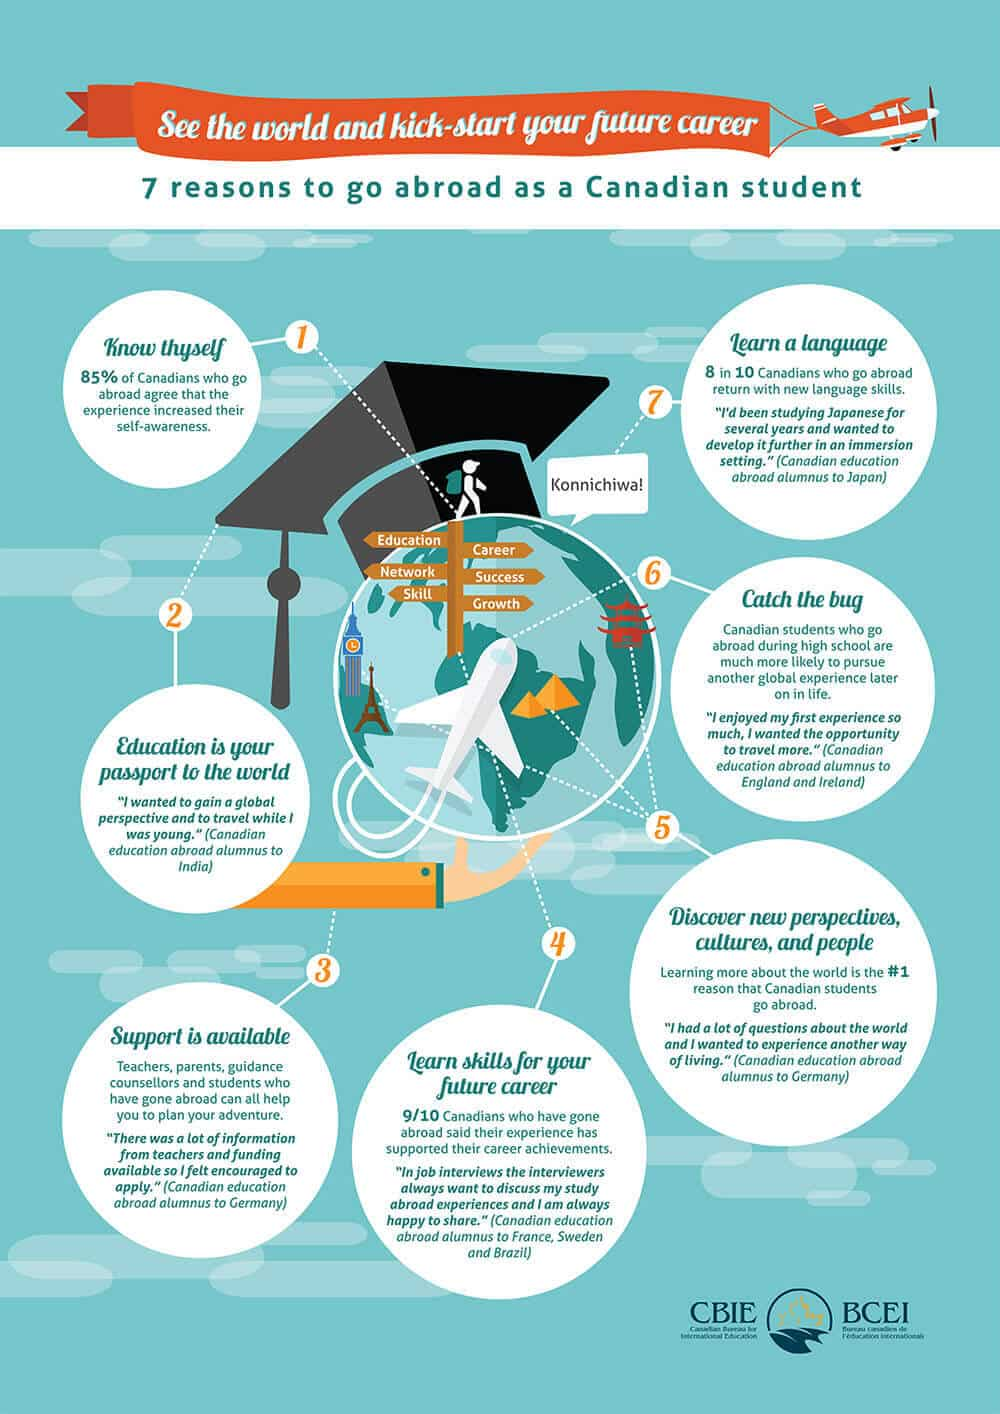 7 Reasons to Go Abroad Infographic